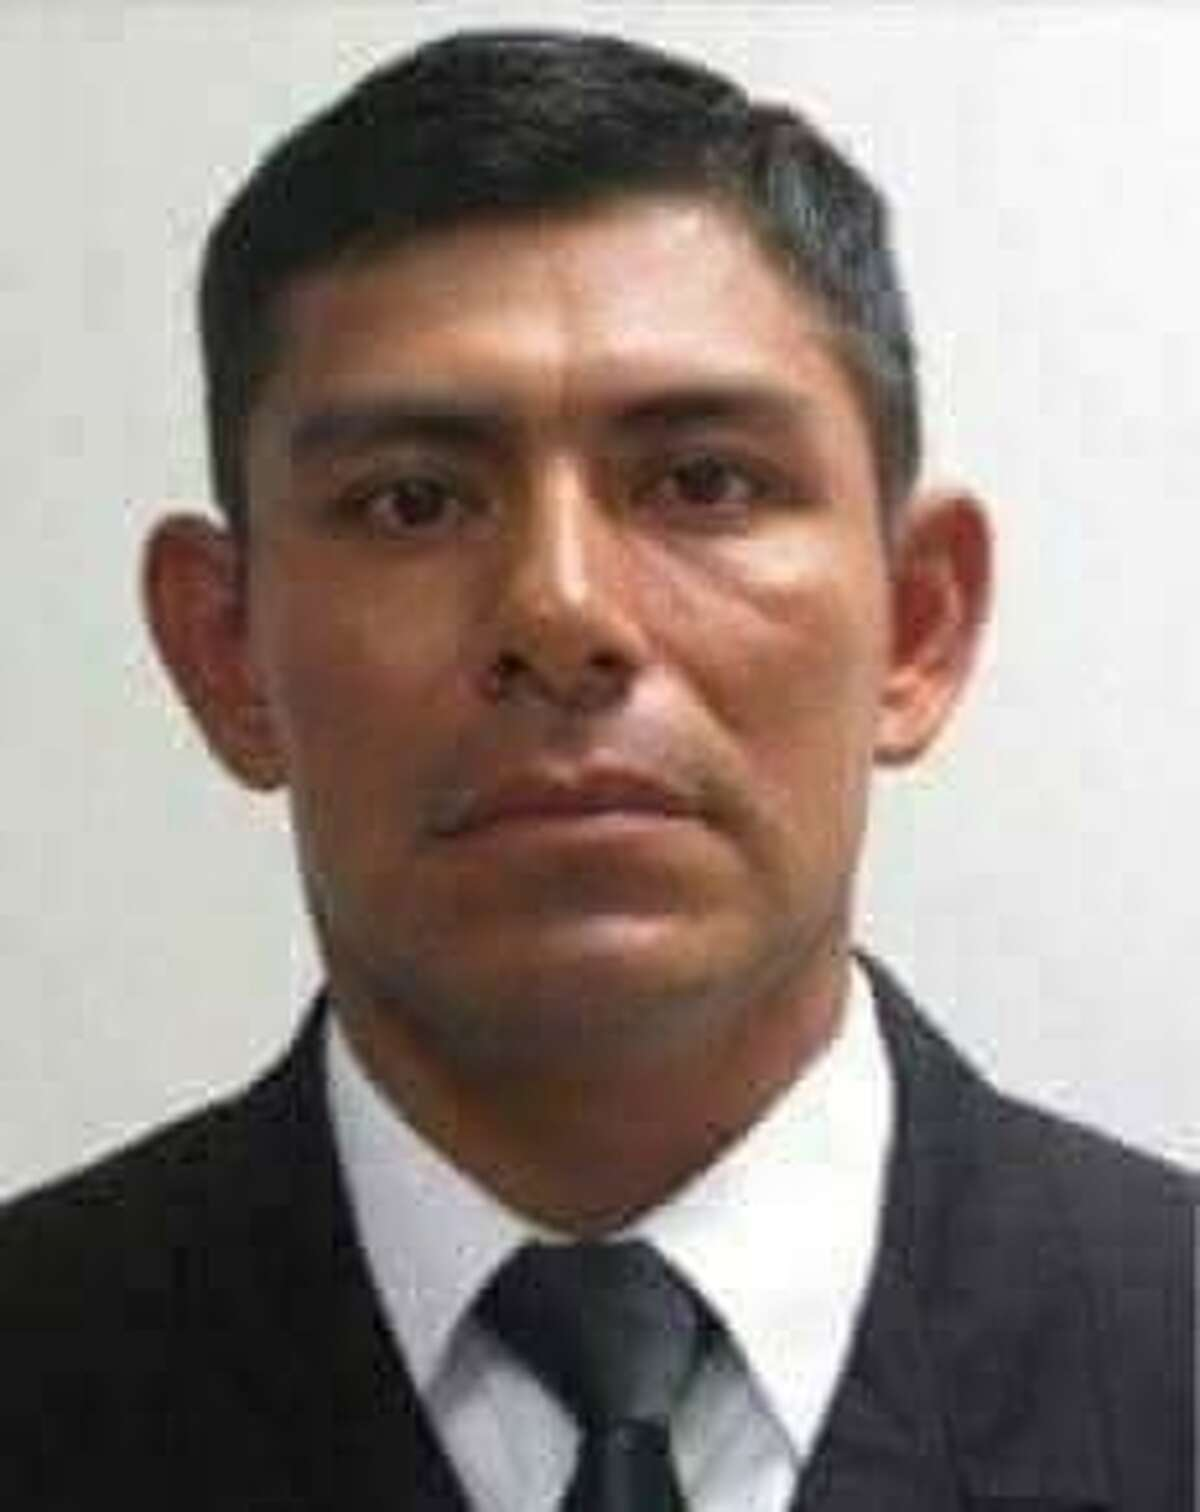 Capt. Mauro Hernandez, an 18-year veteran, was killed during shootout in Mexico Sunday.